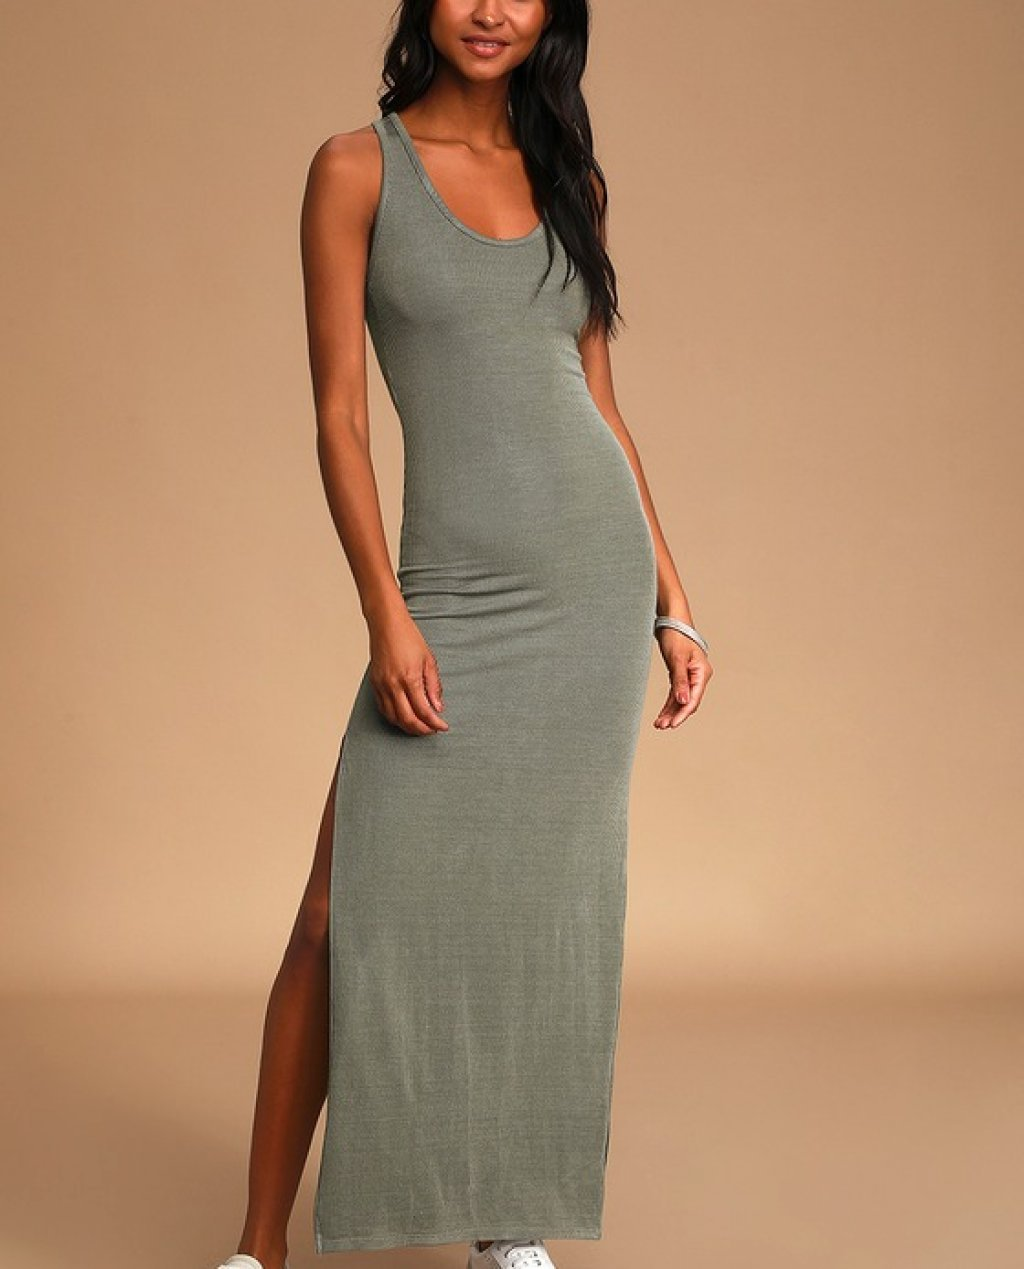 Relaxed but Not Least Sage Green Ribbed Sleeveless Maxi Dress